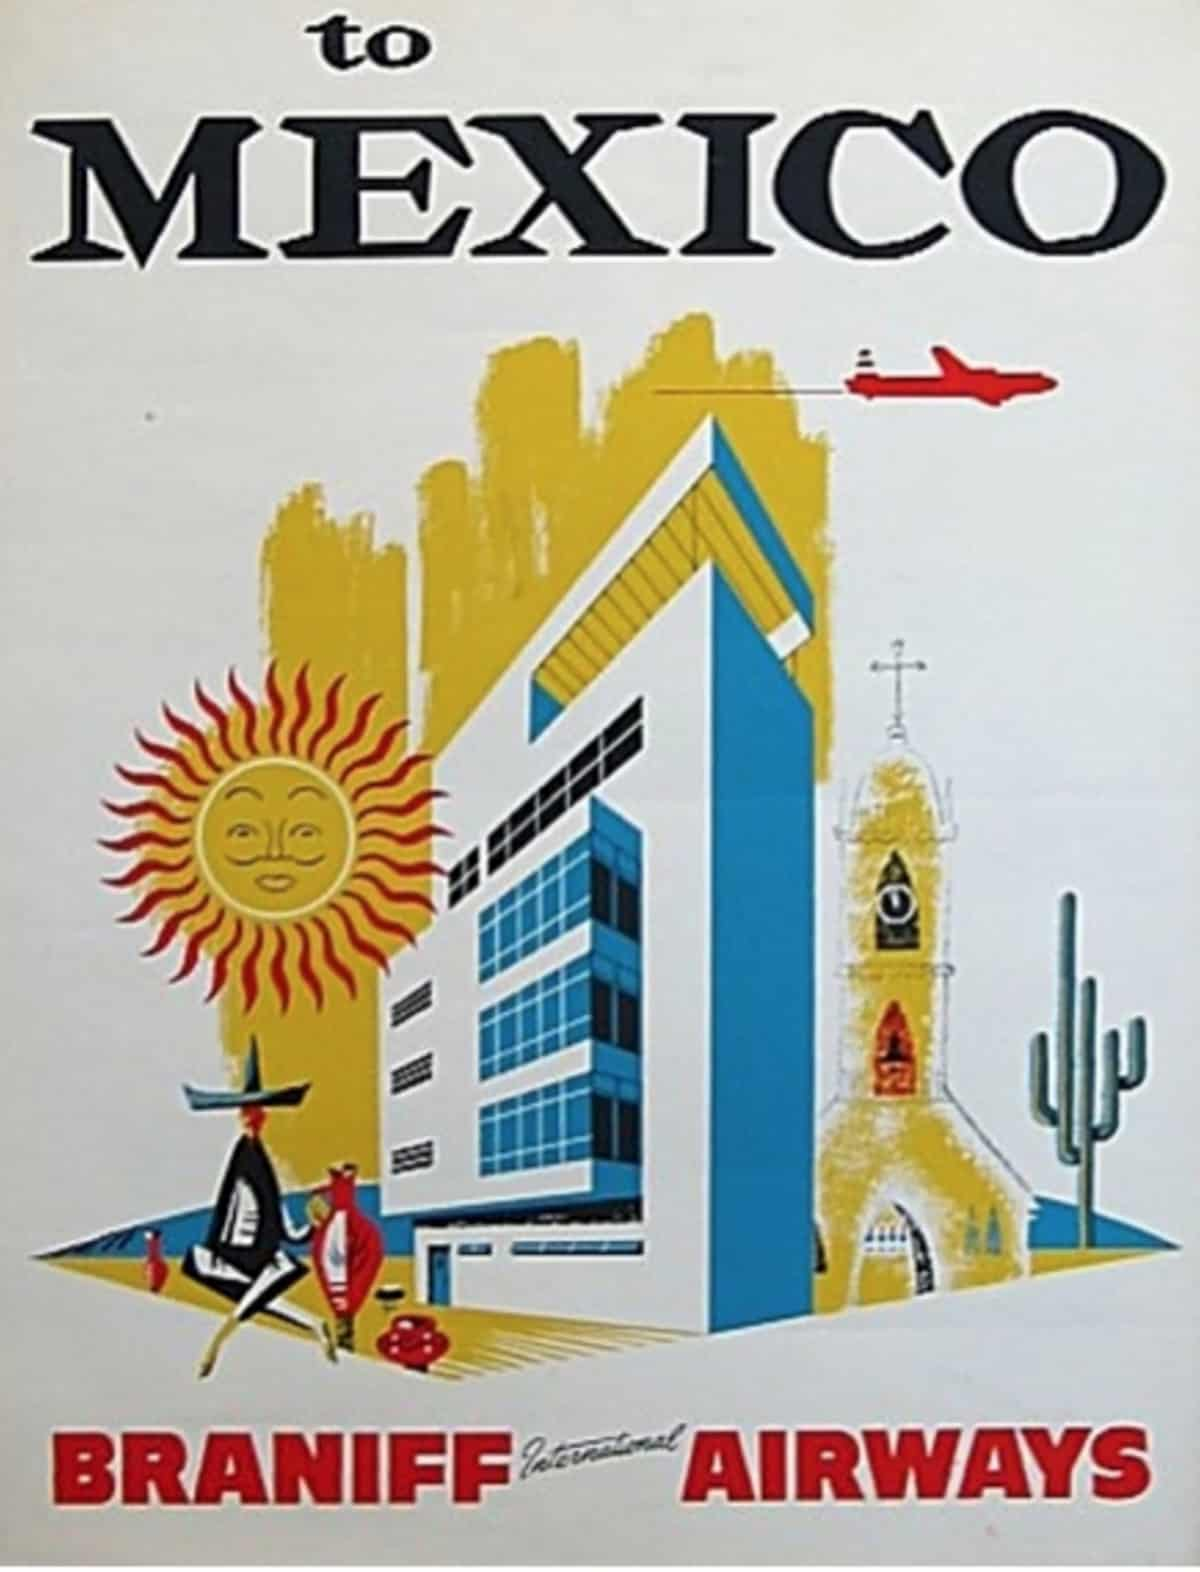 Braniff to Mexico poster, 1960s